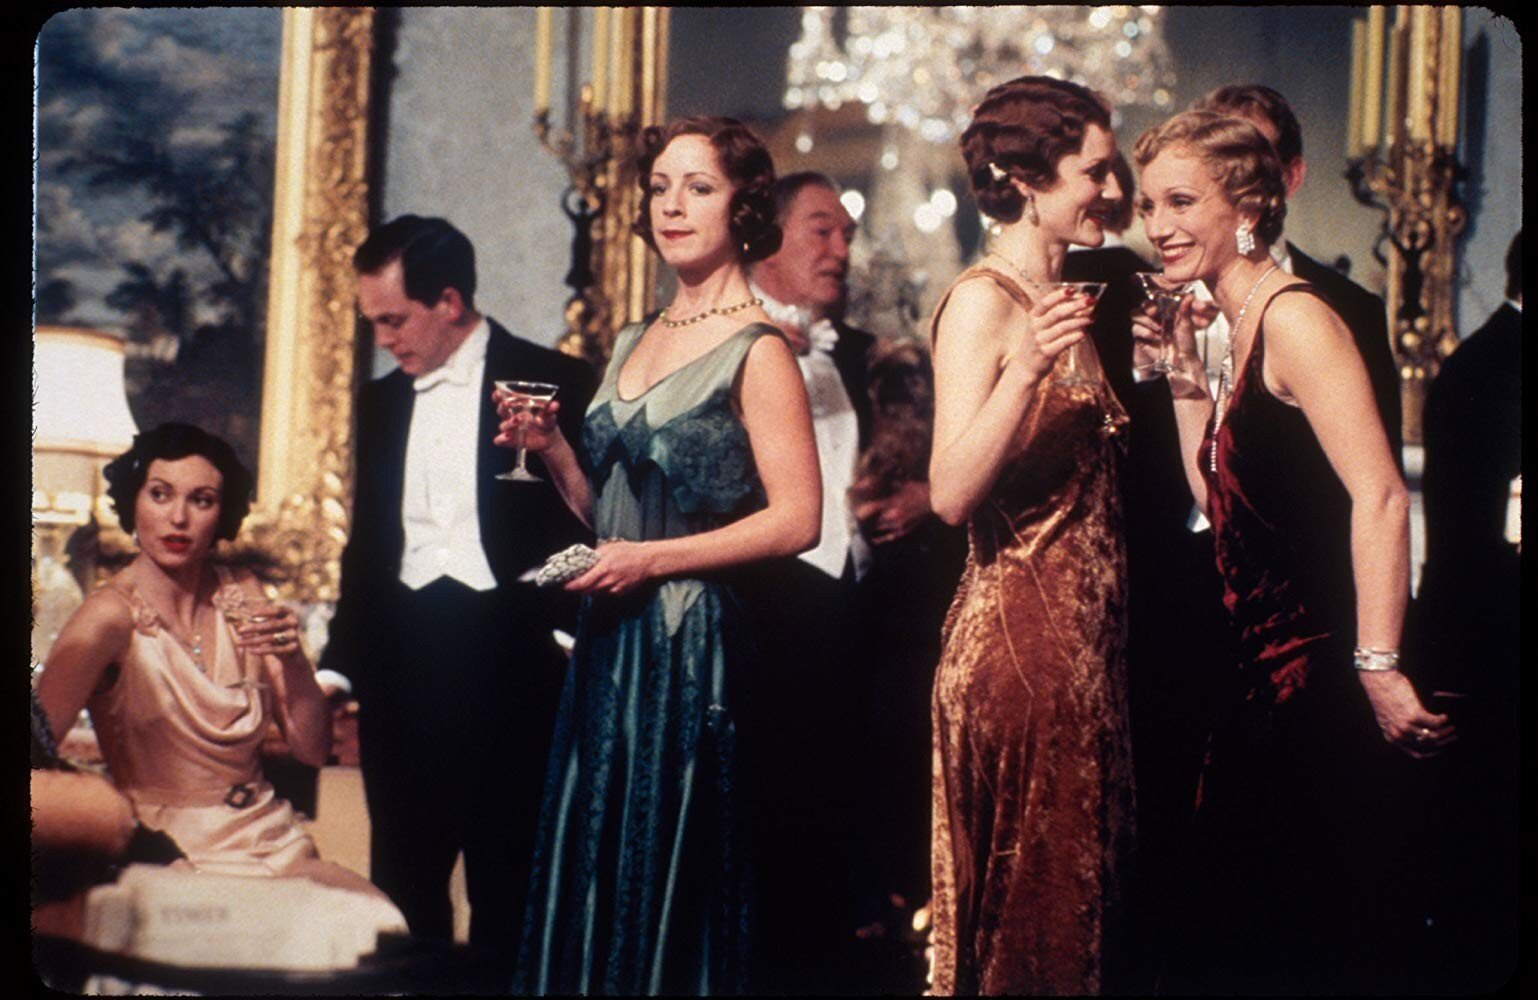 Gosford Park 2001 Dir Robert Altman The Succinct Review